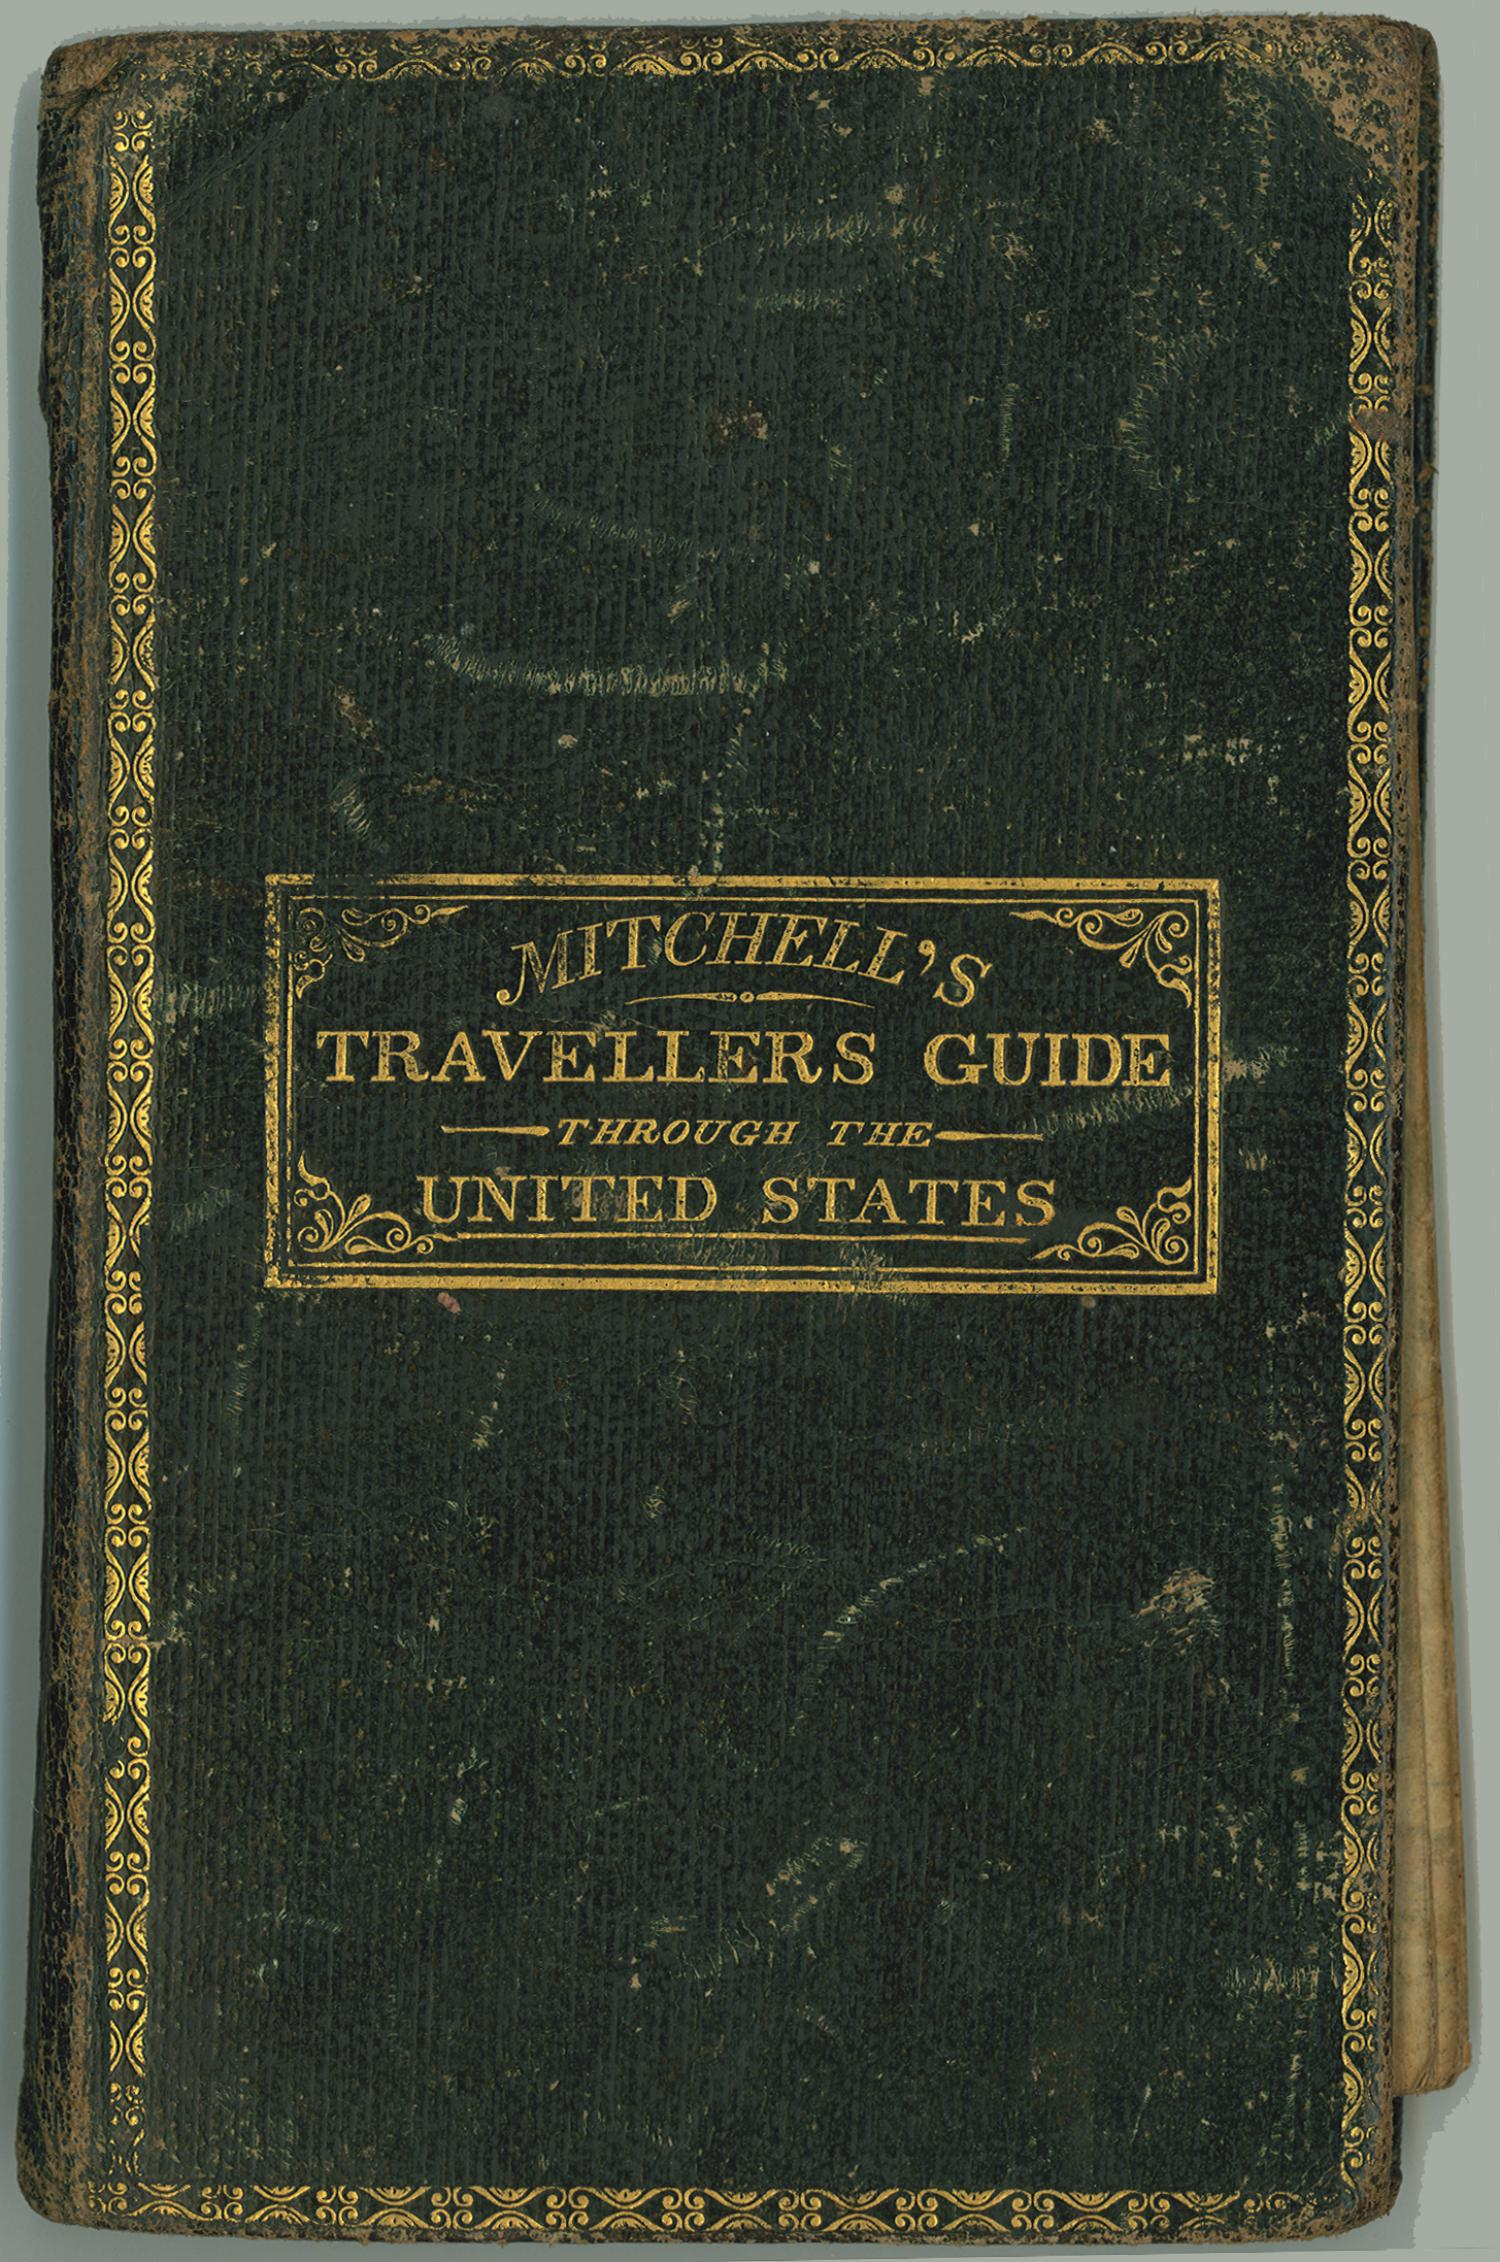 """Mitchell's Travellers Guide through the U.S.  A map of the roads, distances, steam boat & canal routes &c.""                                                                                                      [Sequence #]: 1 of 2"